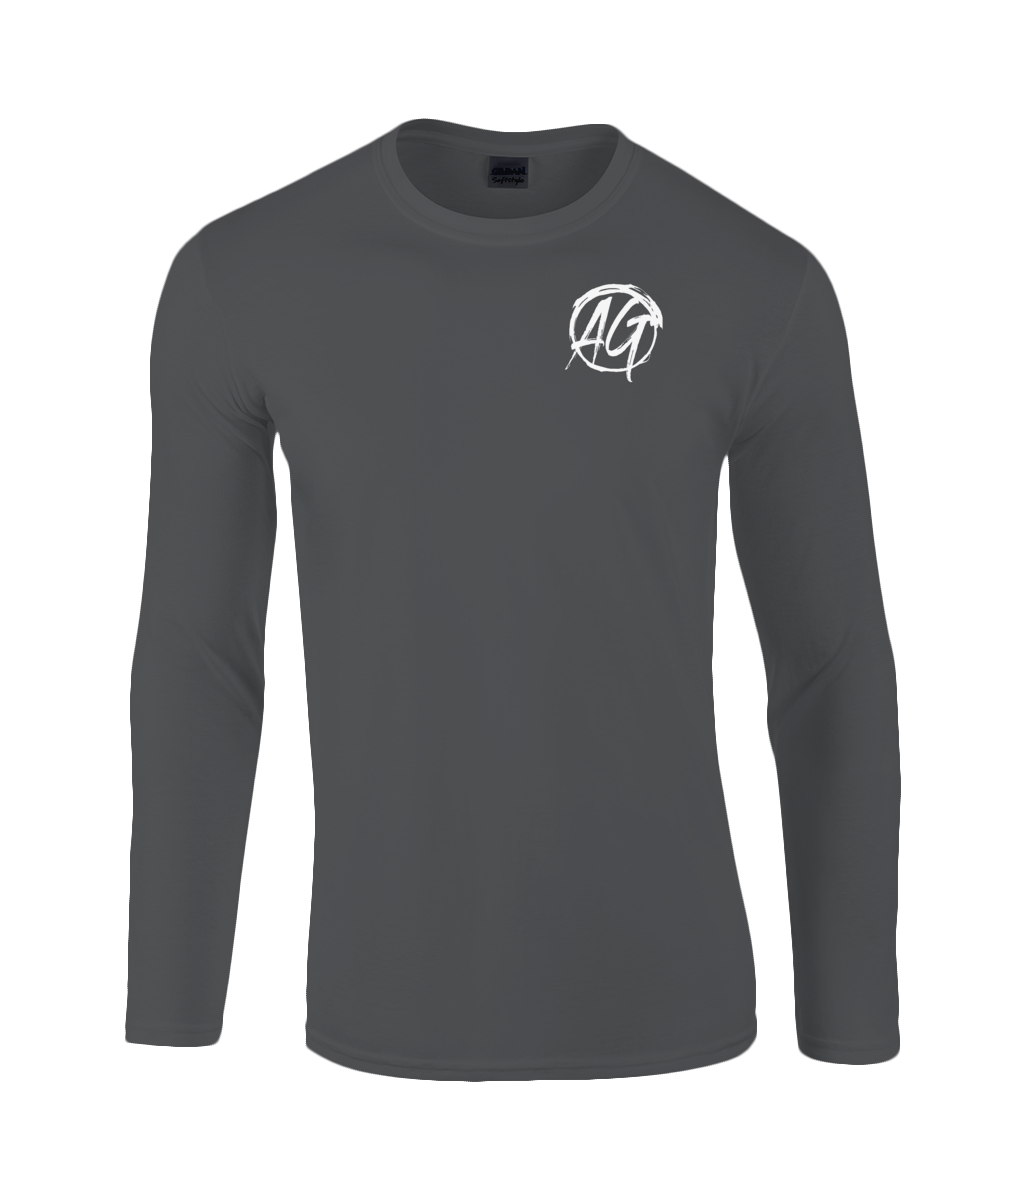 AG Wear Gildan SoftStyle® Long Sleeve T-Shirt Black